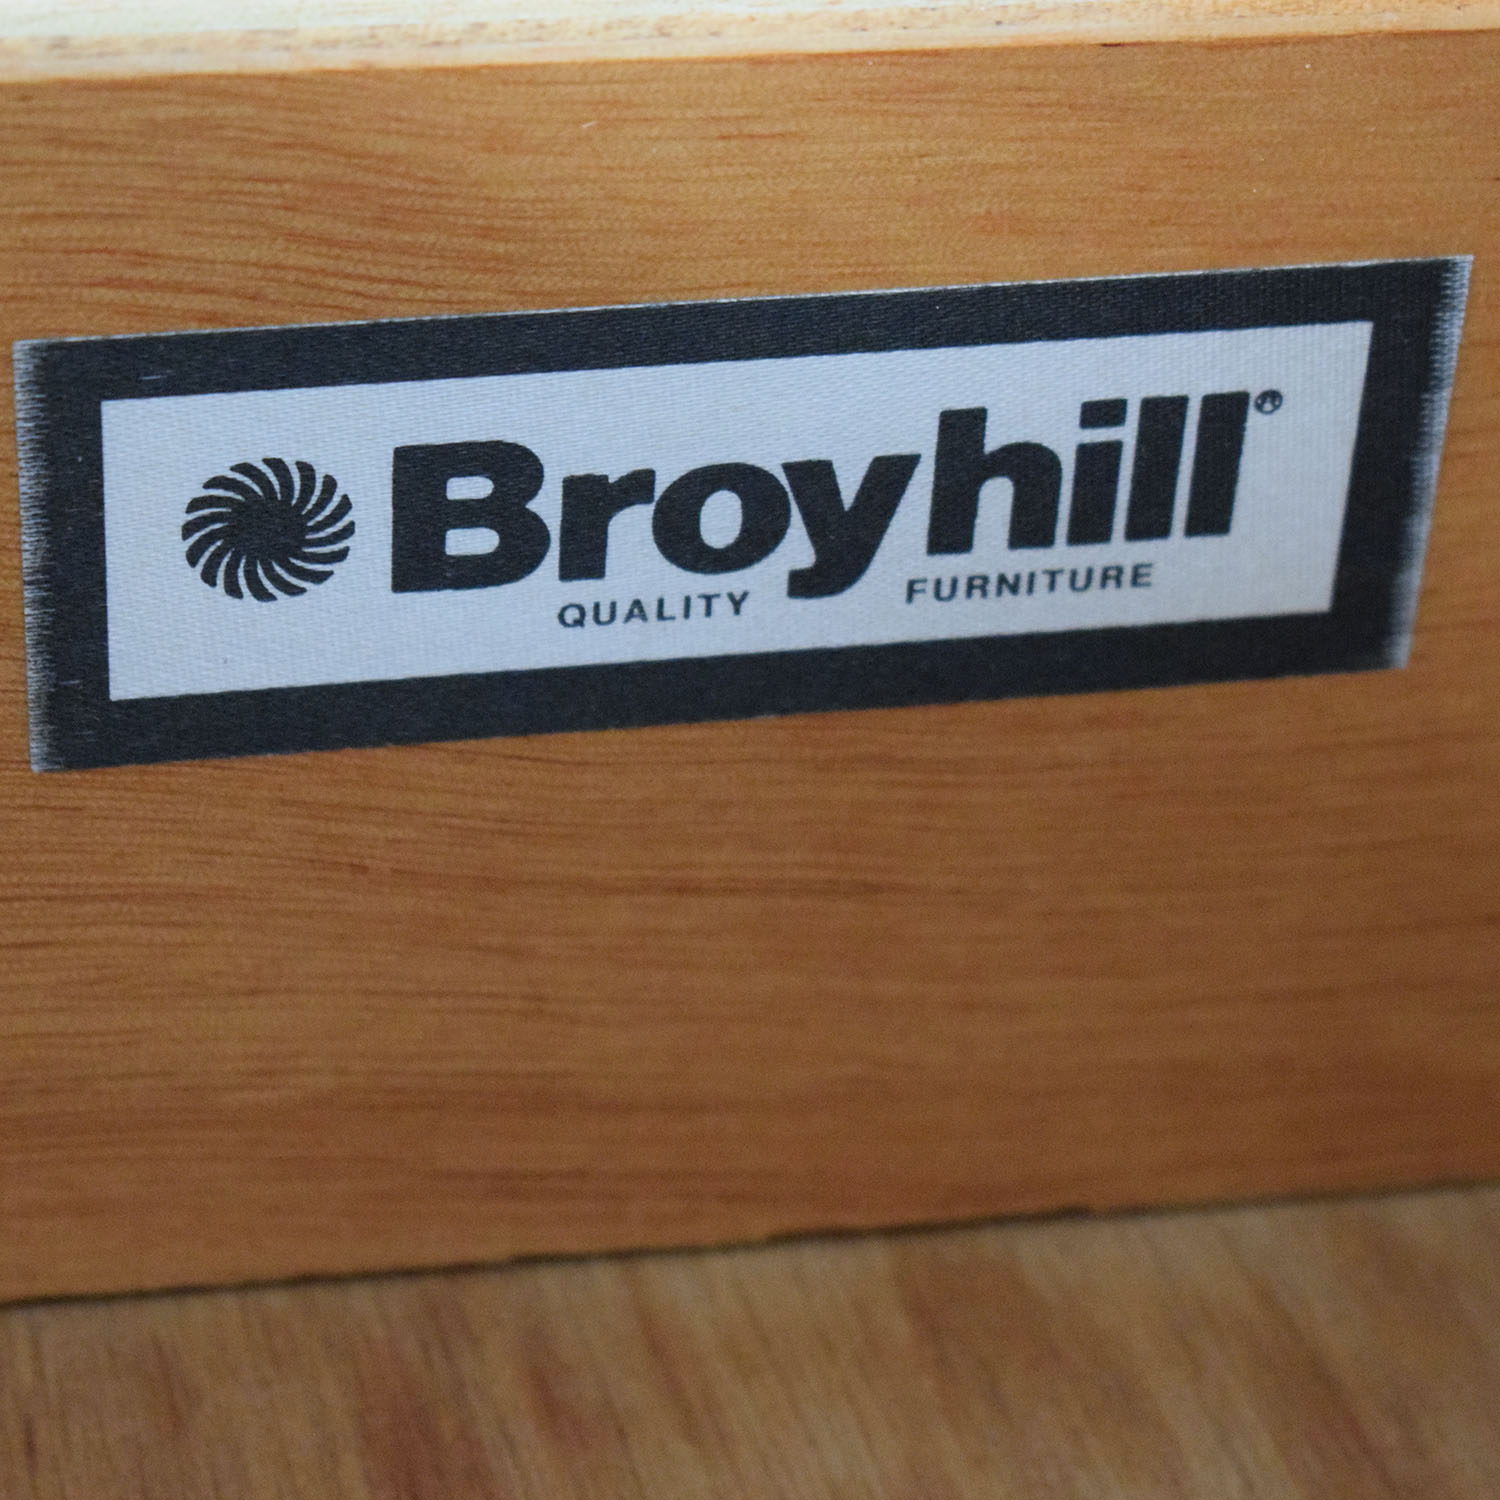 Broyhill Broyhill Pine Six-Drawer Lingerie Chest price